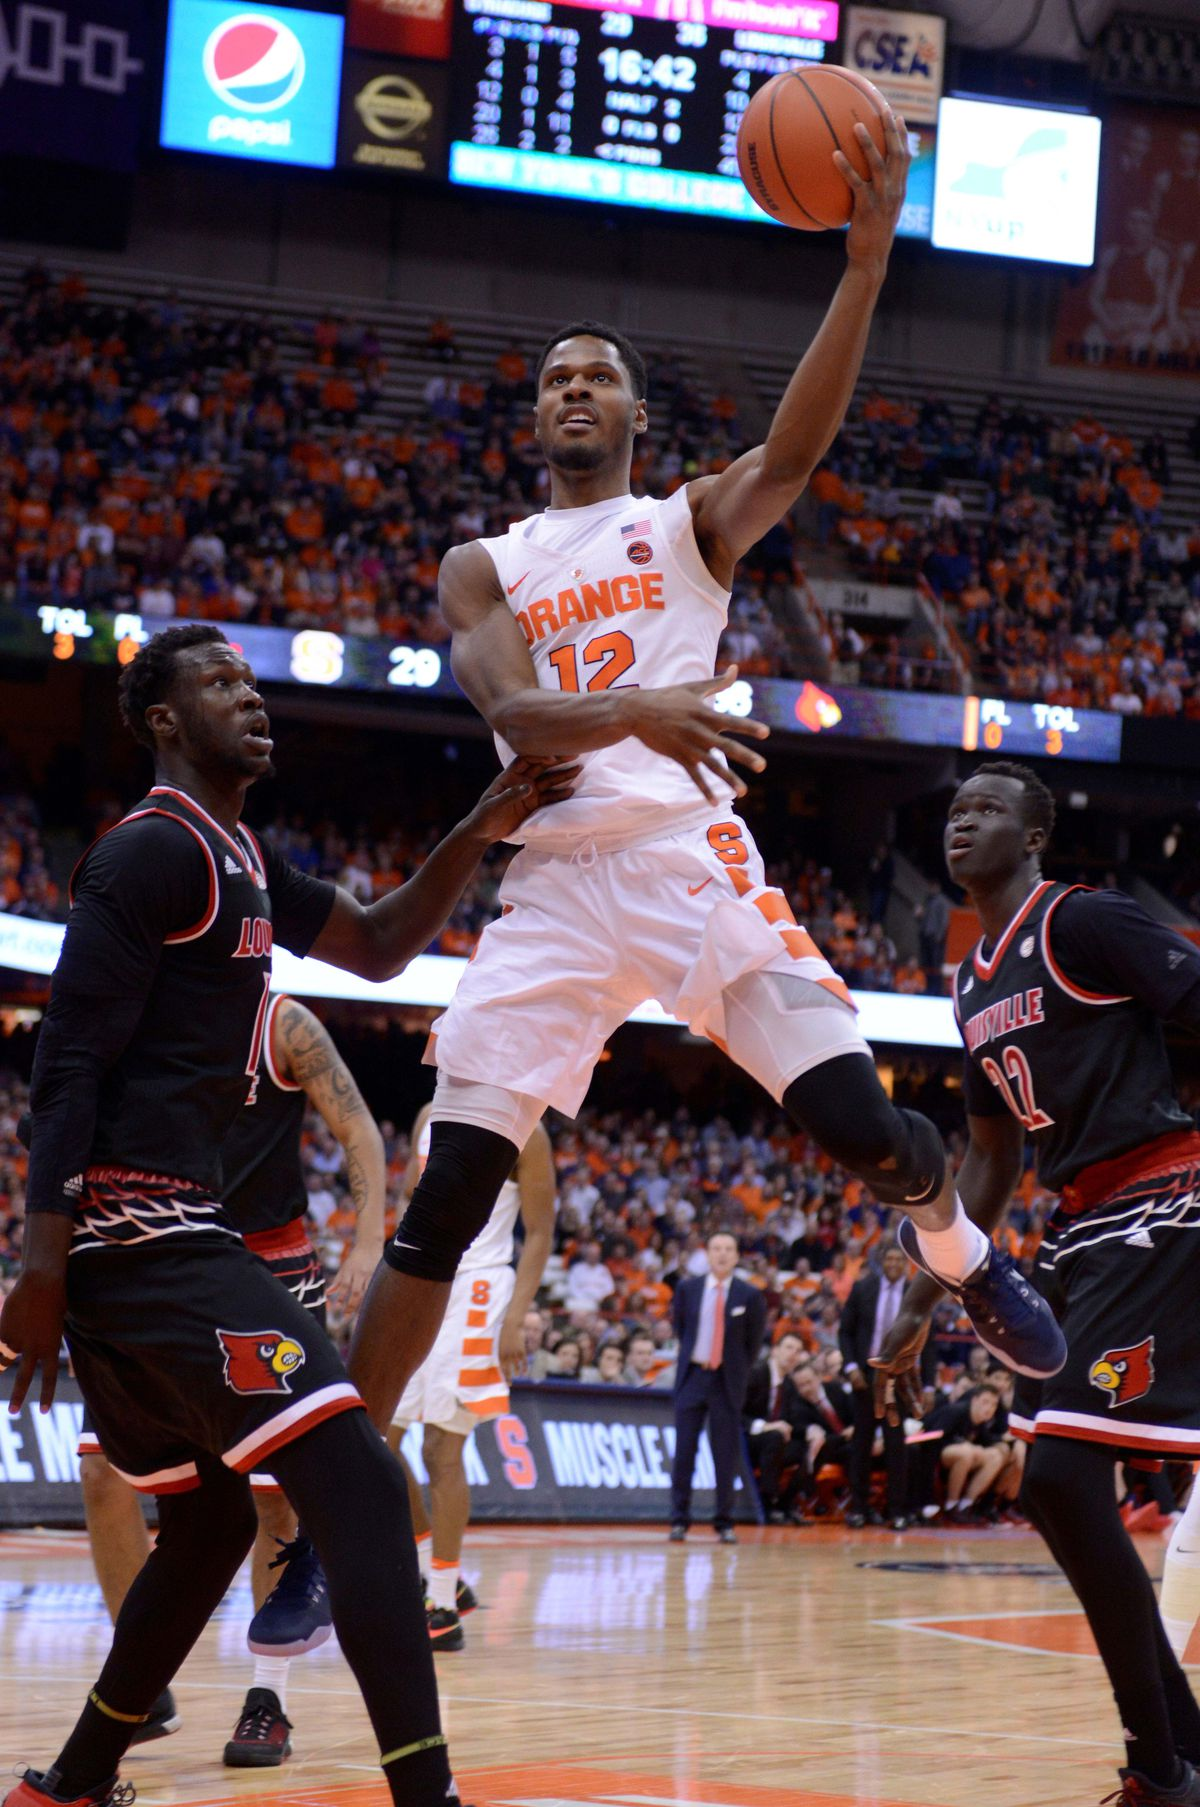 SU out-rebounded again in loss to Louisville